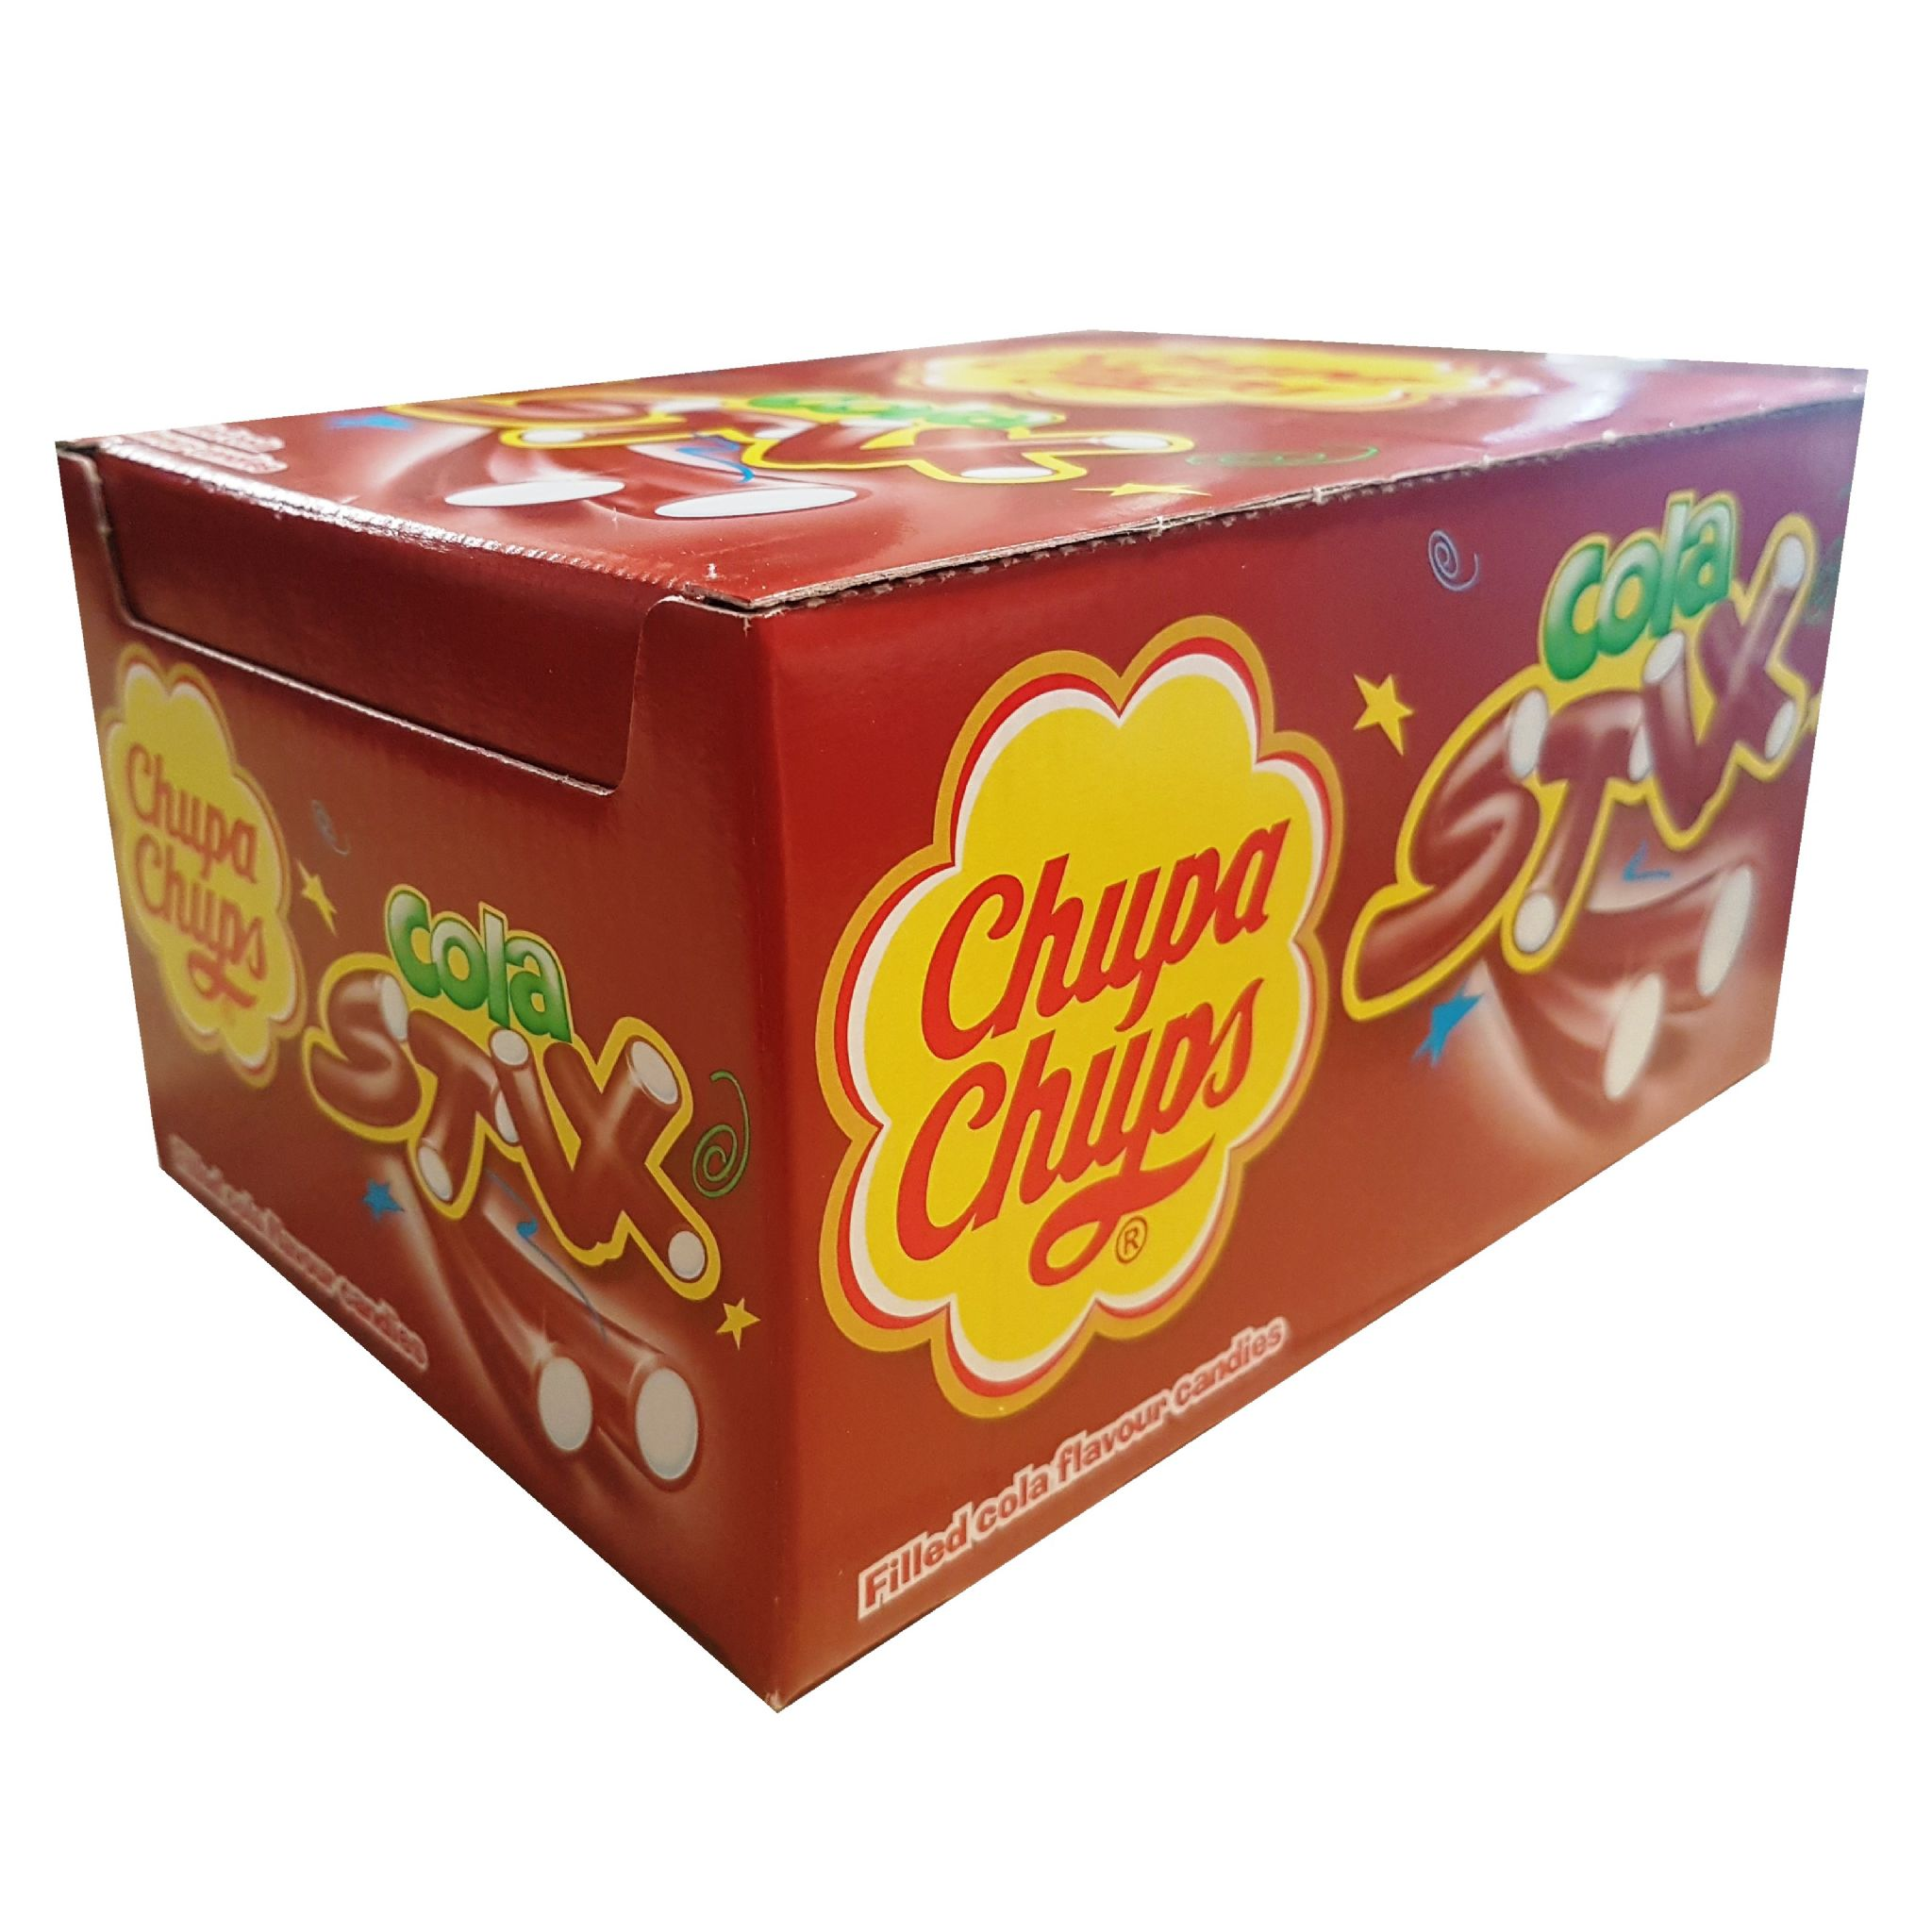 150 X Cola Stix Chupa Chups Fruit Flavoured Sweets Wholesale Box